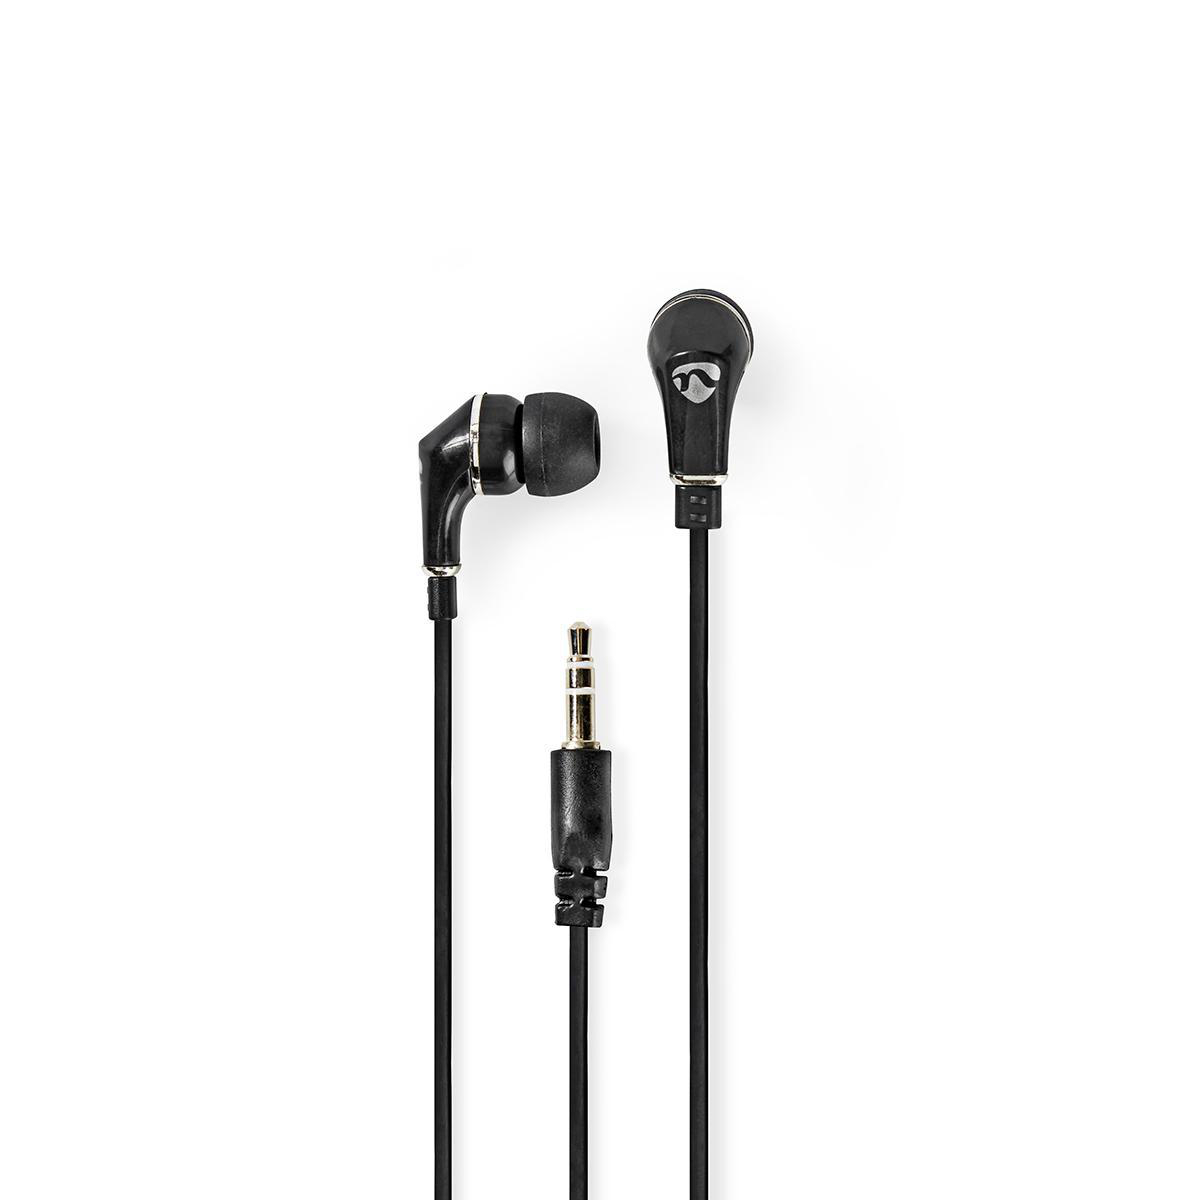 HPWD1002BK  AURICULARES INTRA CON CABLE